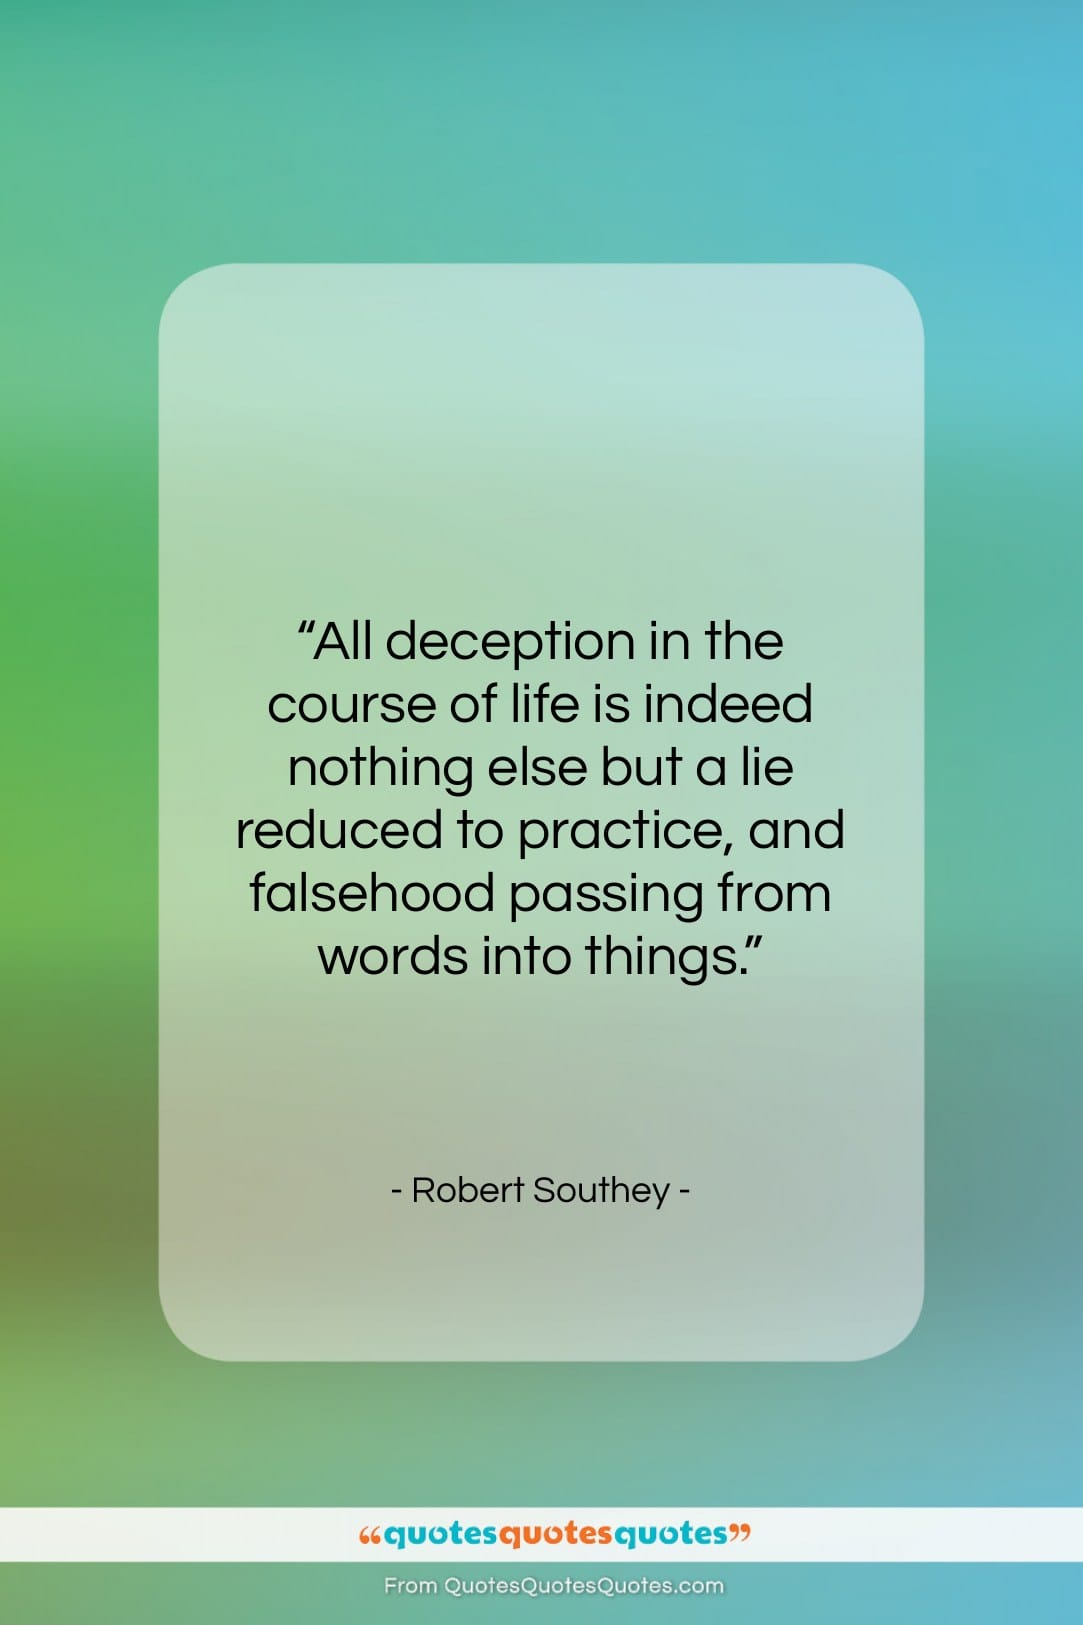 """Robert Southey quote: """"All deception in the course of life…""""- at QuotesQuotesQuotes.com"""